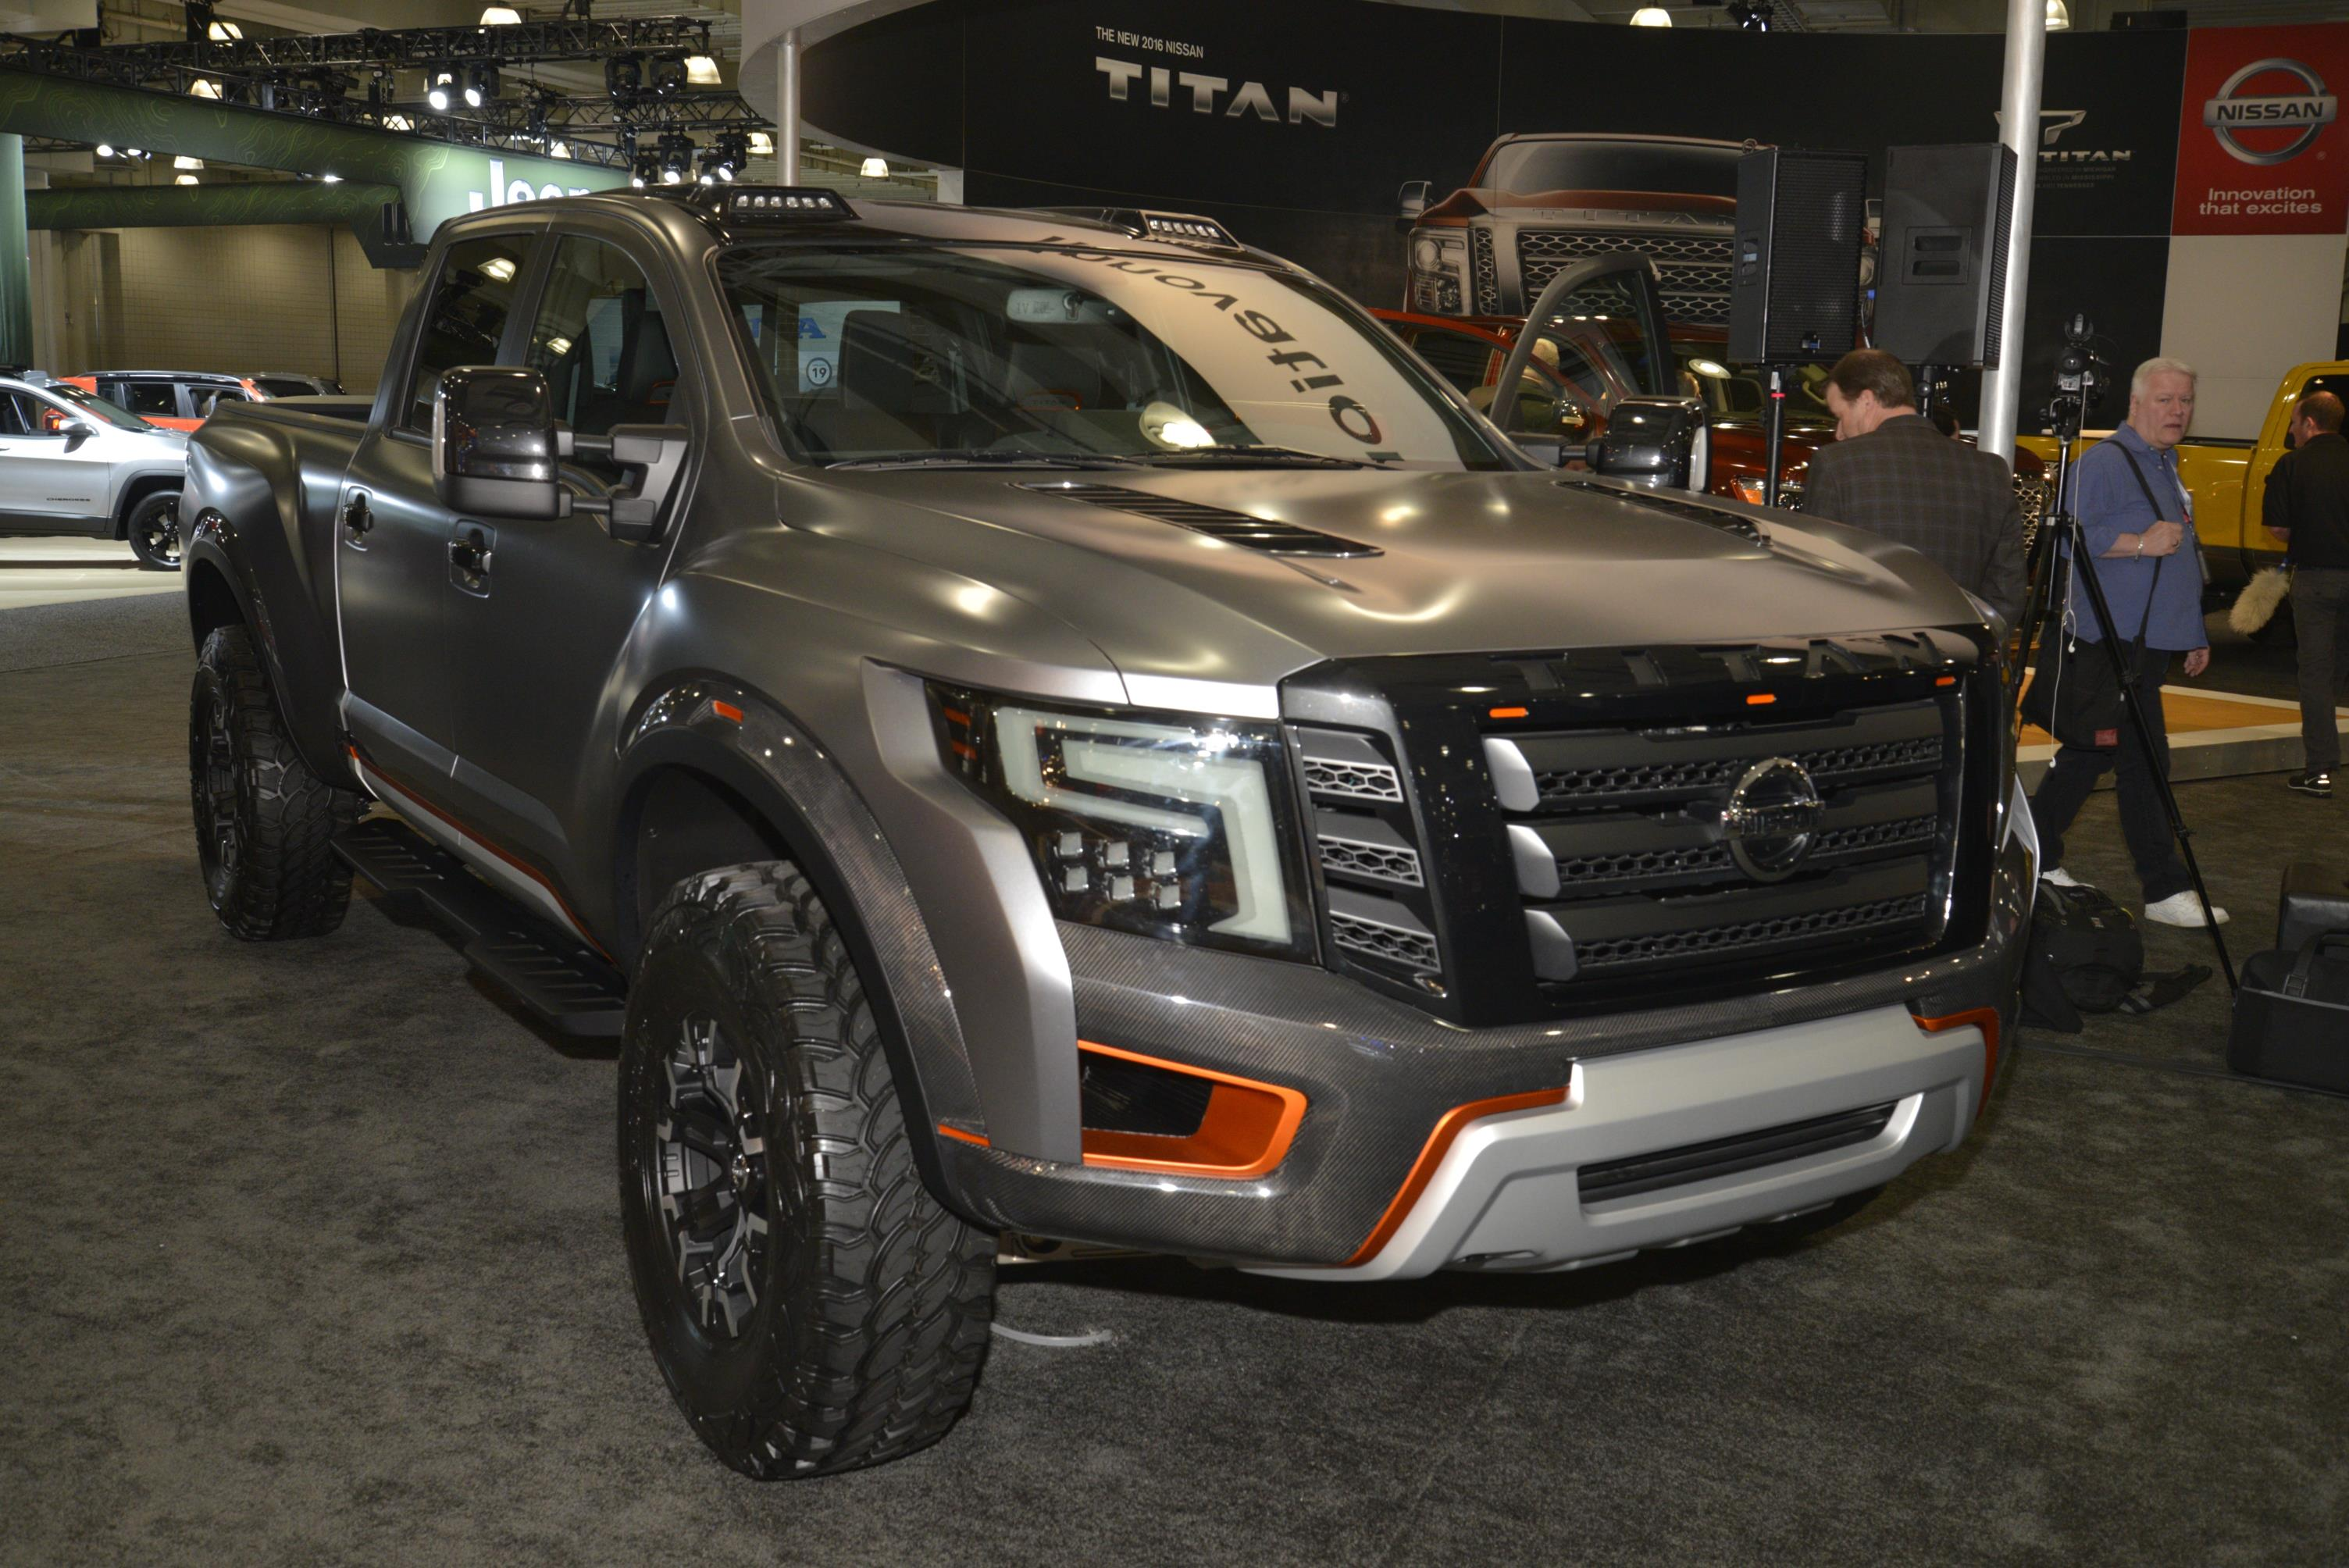 Nissan Titan Warrior Concept Photo On Automoblog Net